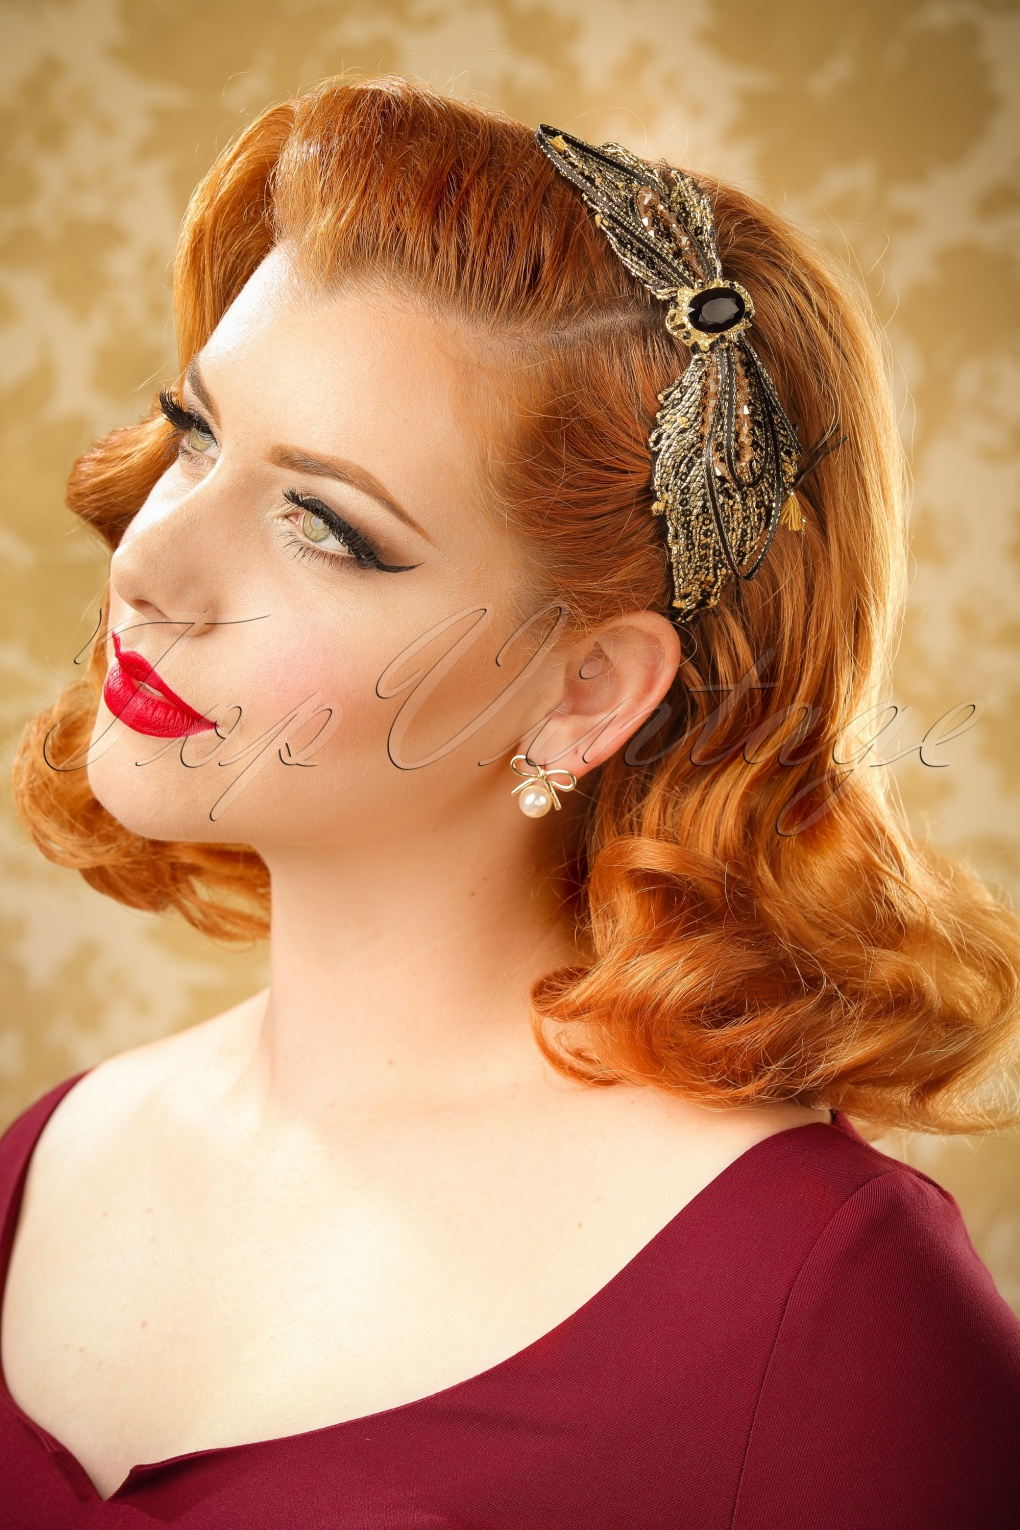 30s Glamorous Isabella Hair Band In Black And Gold